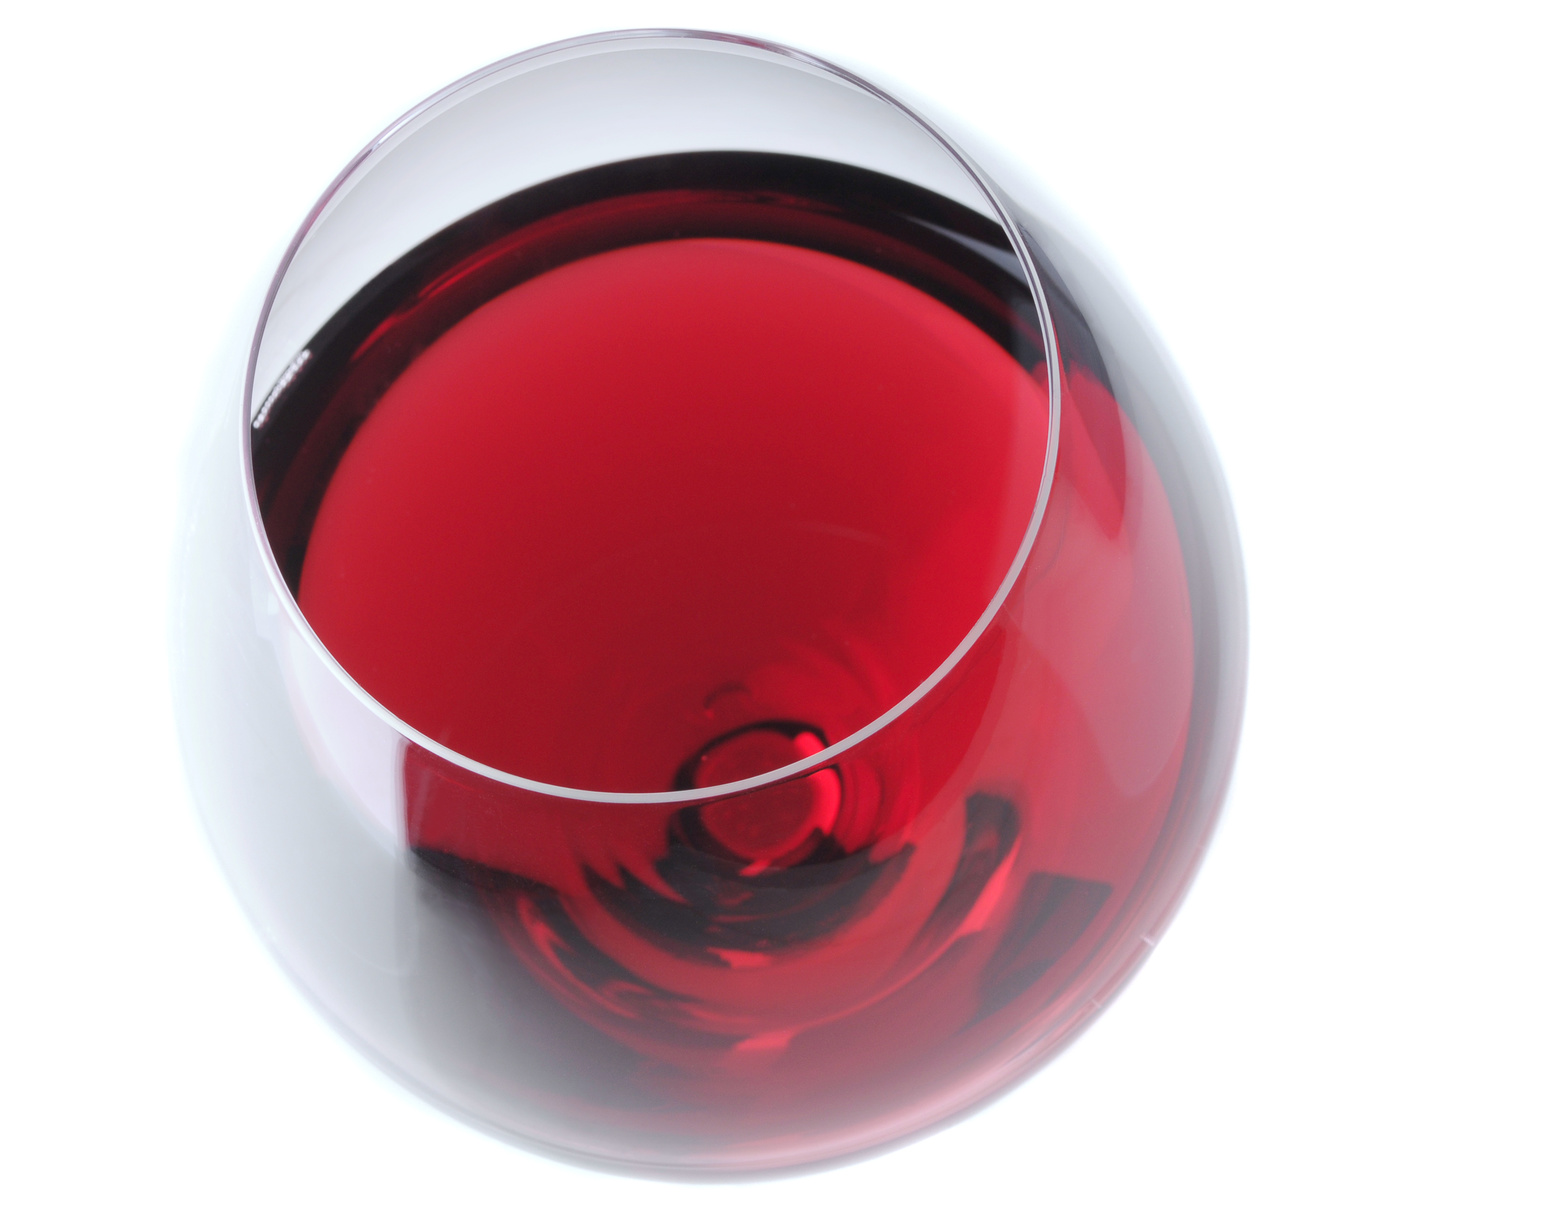 Red Wine Glass Viewed from high angle over light gray background with slight reflection